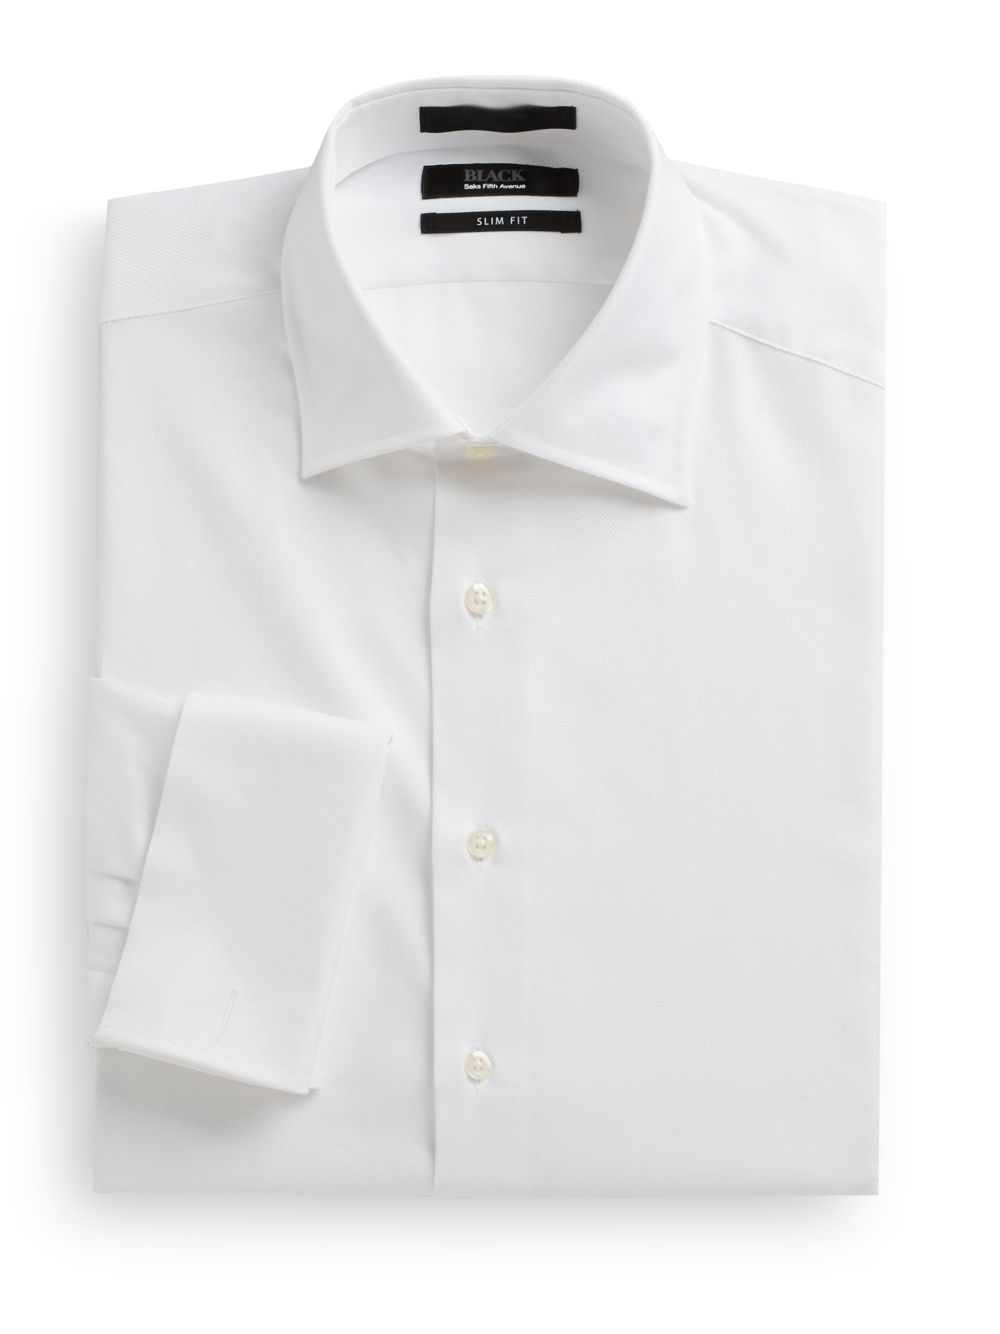 Saks fifth avenue black label slim fit french cuff royal White french cuff shirt slim fit